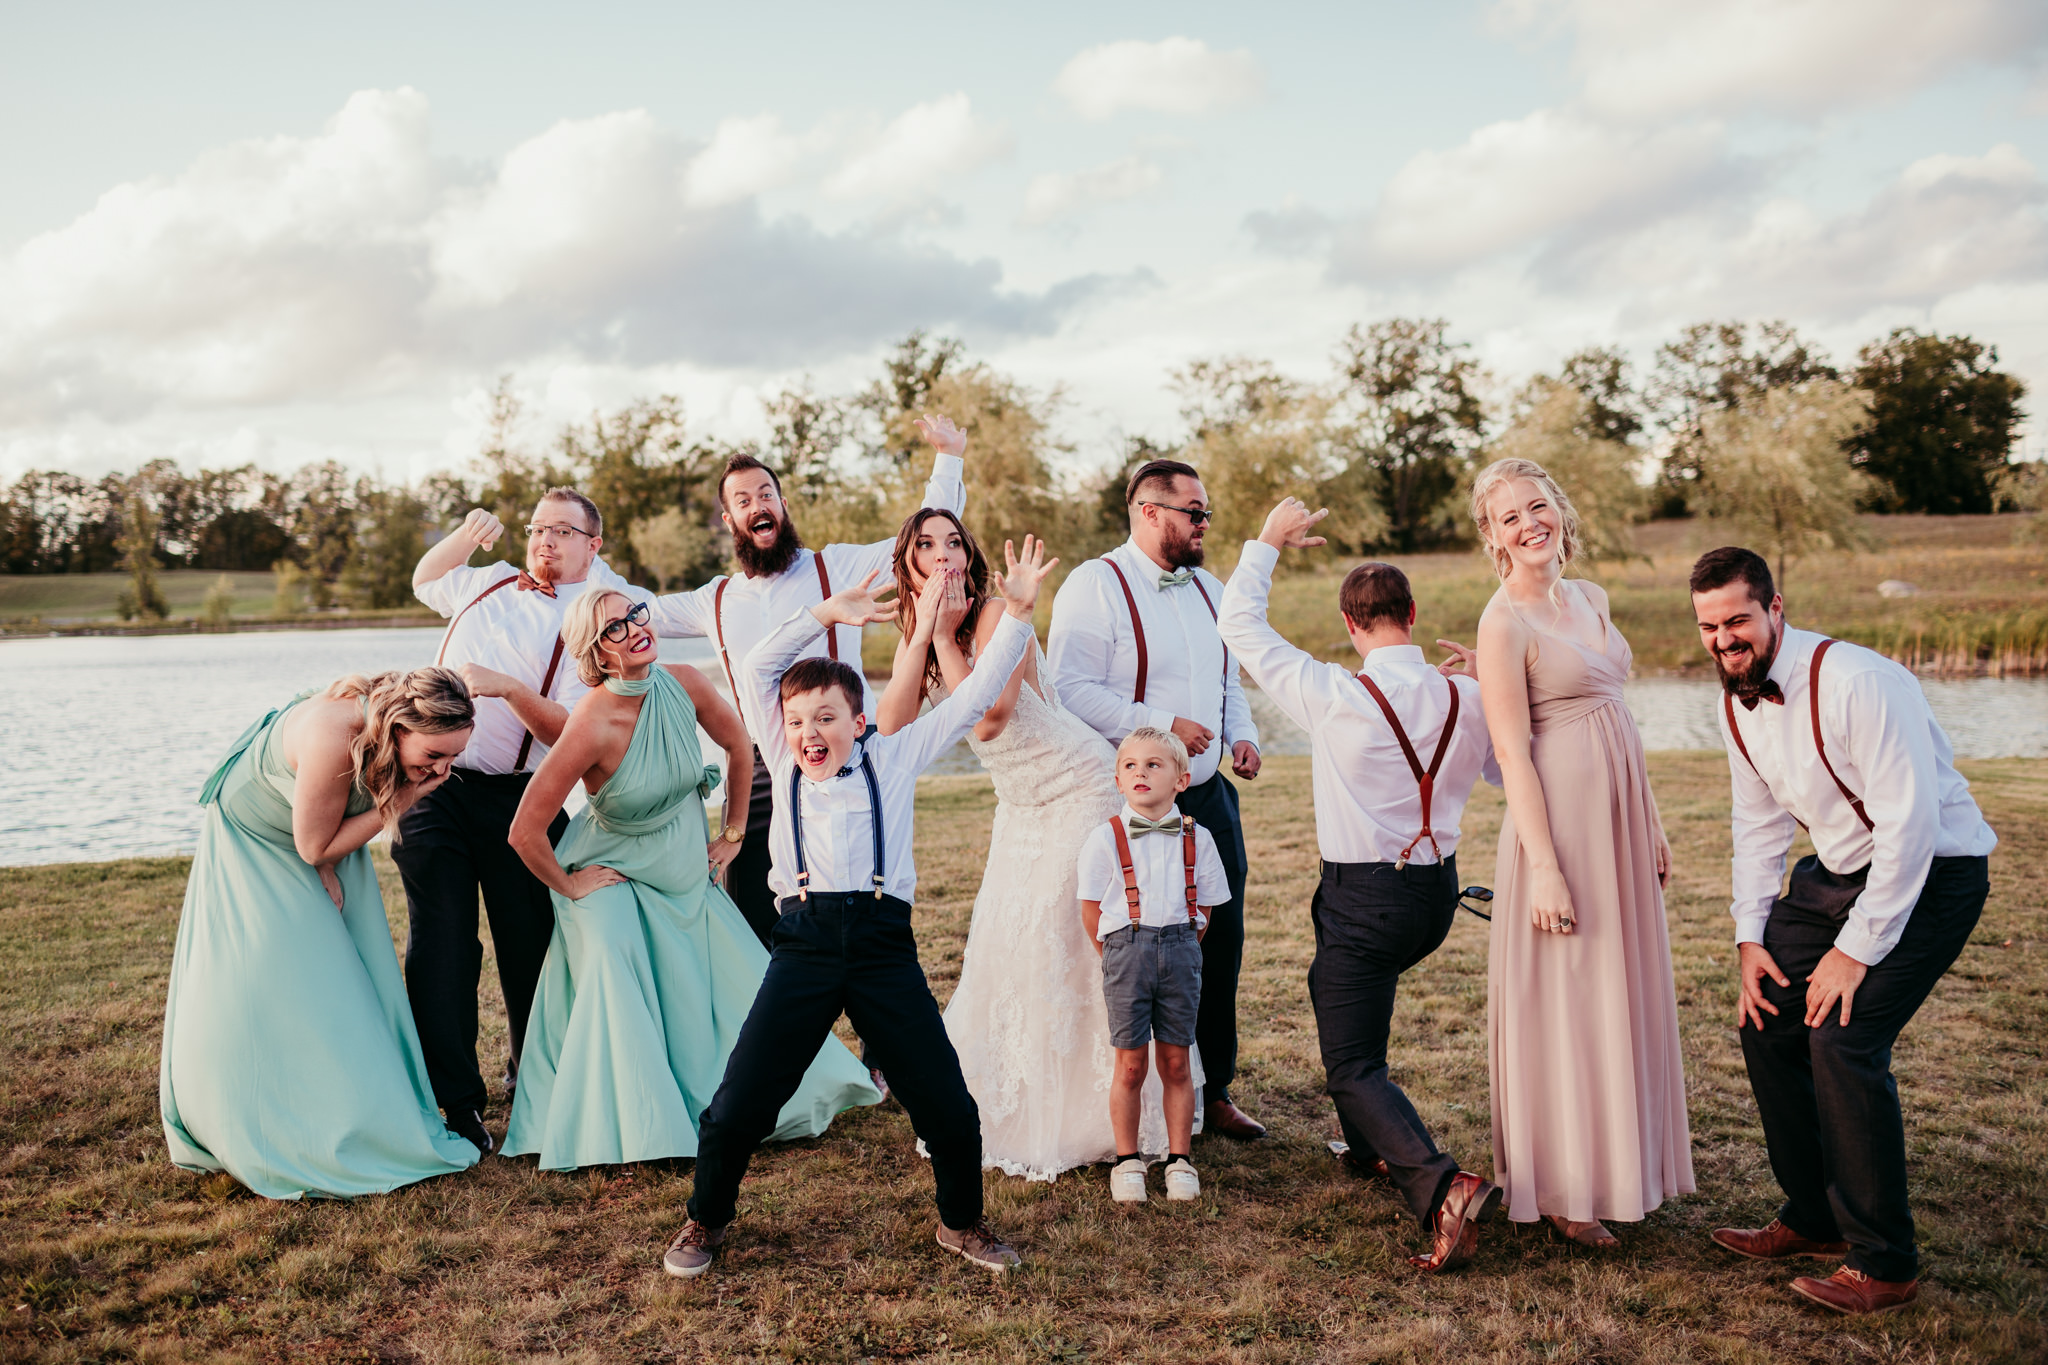 wedding party at sunset being silly for the camera